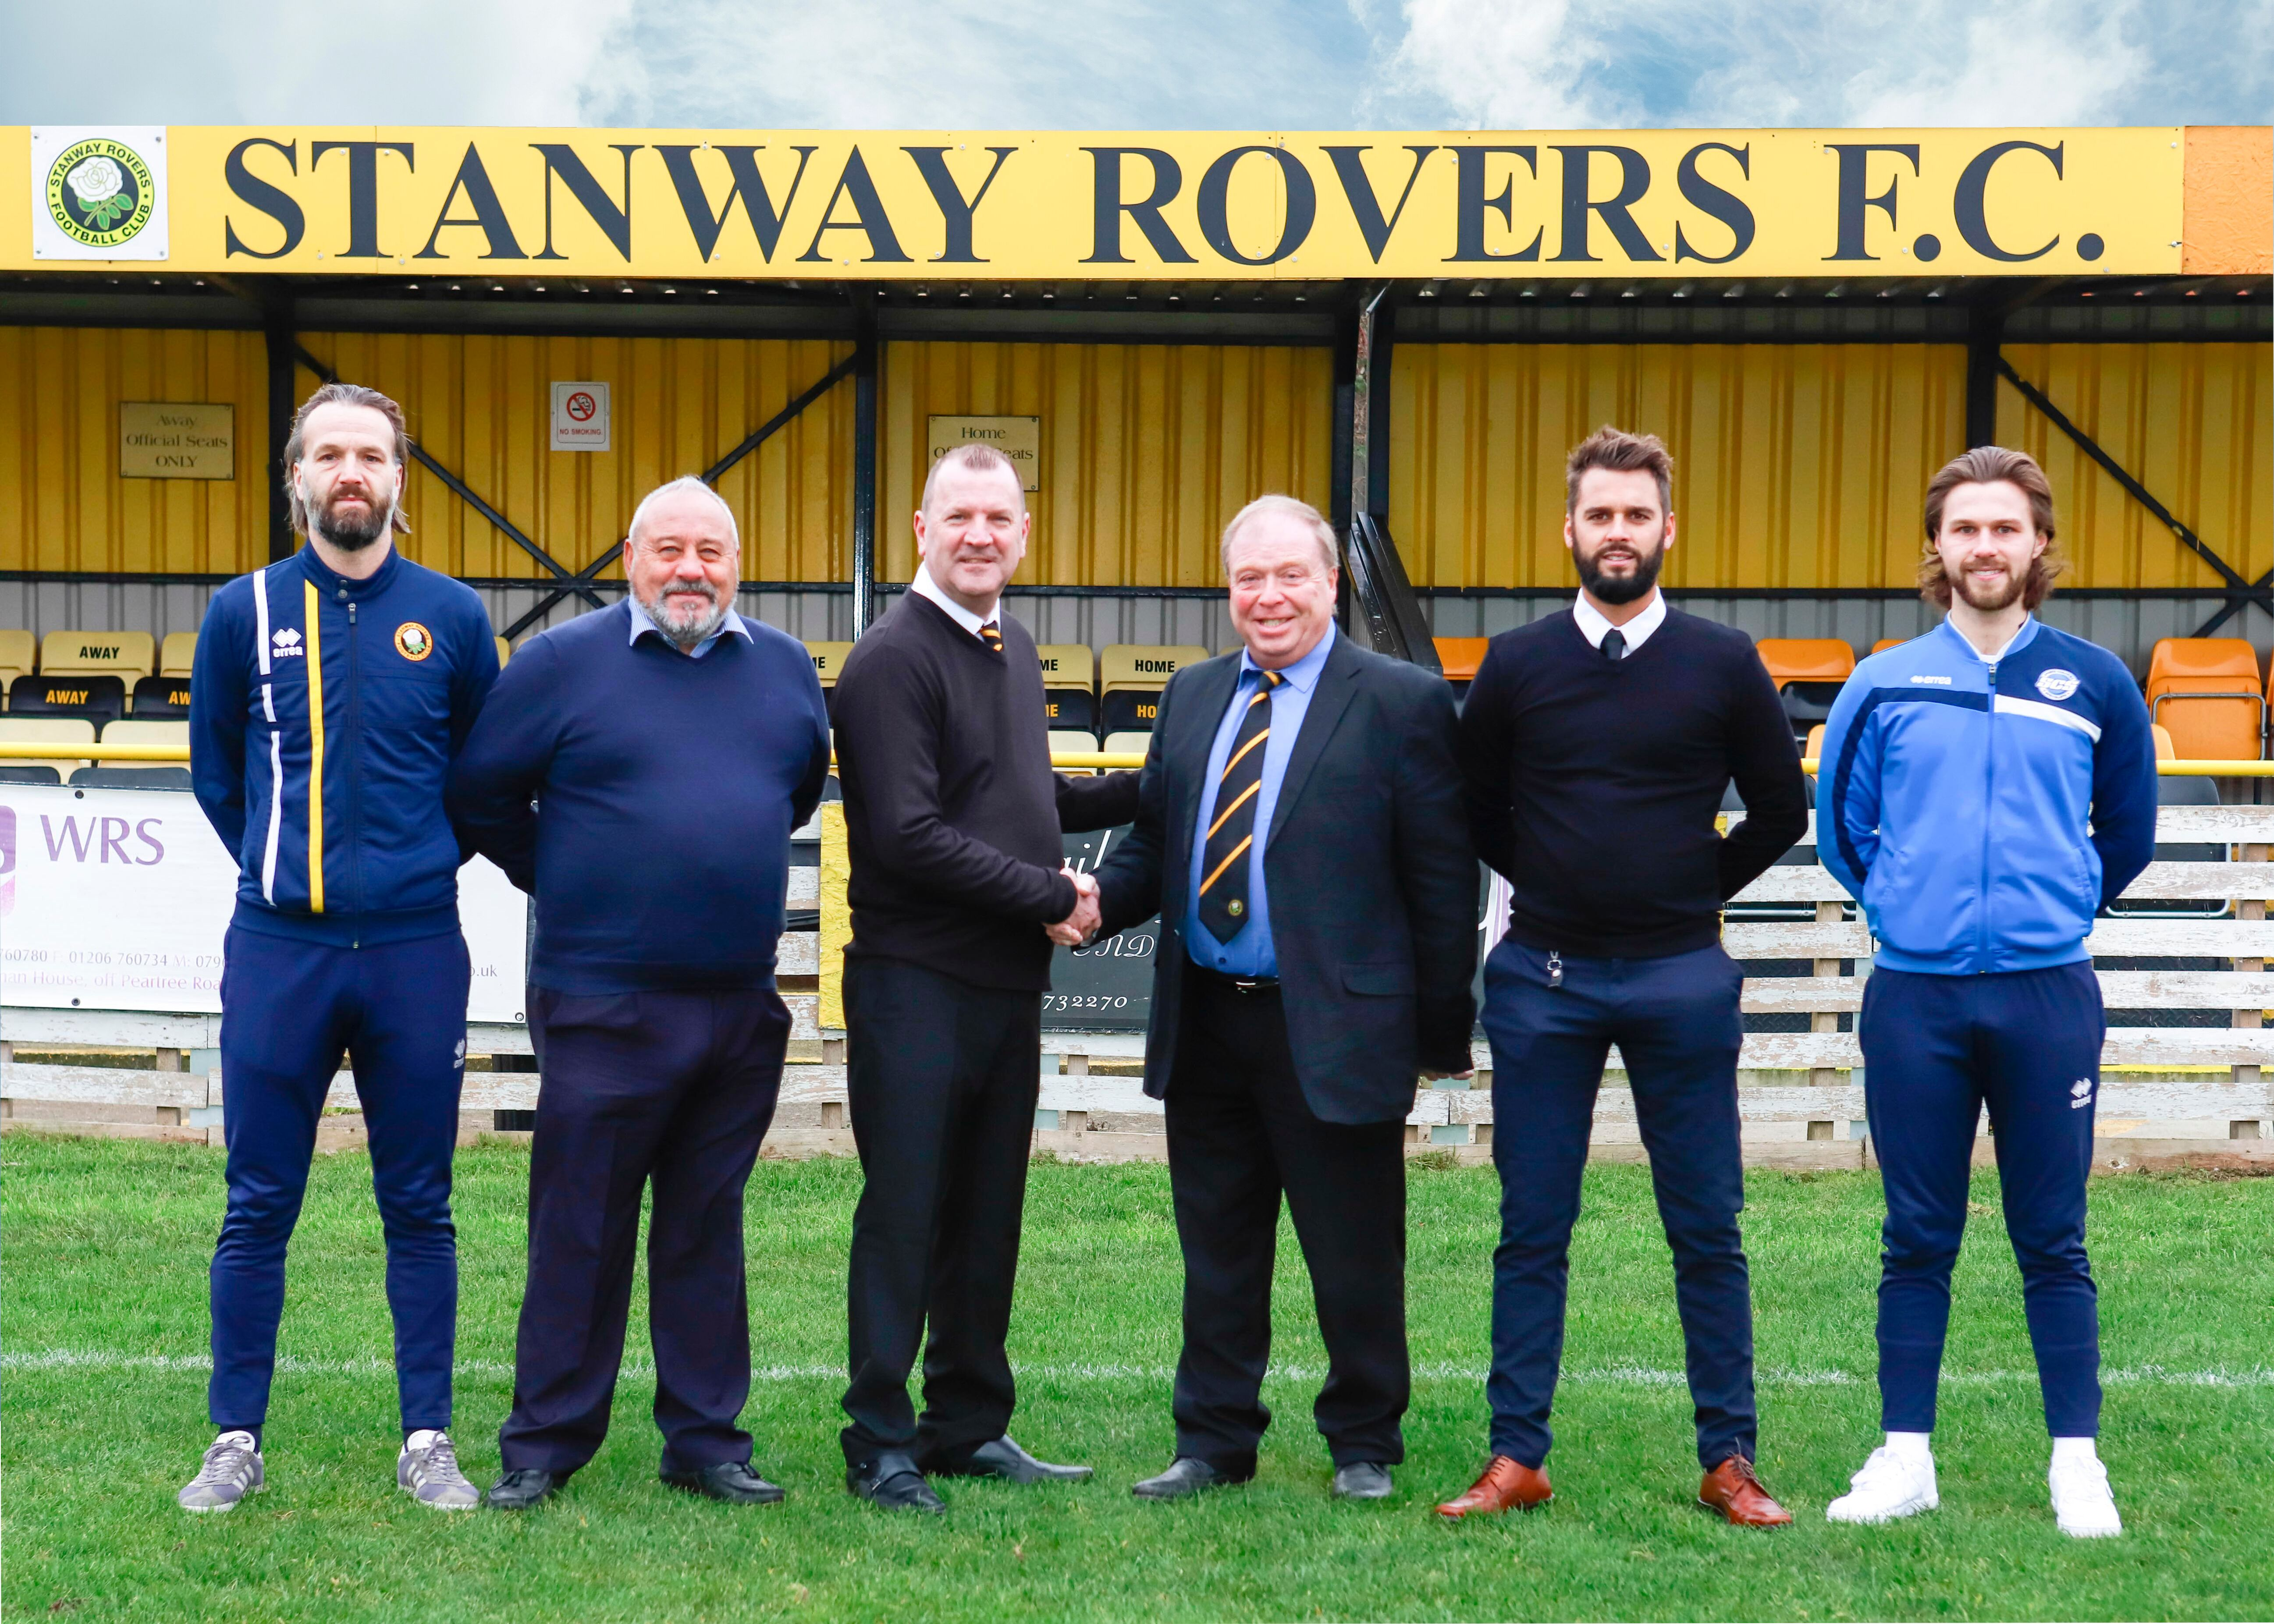 stanway rovers management team